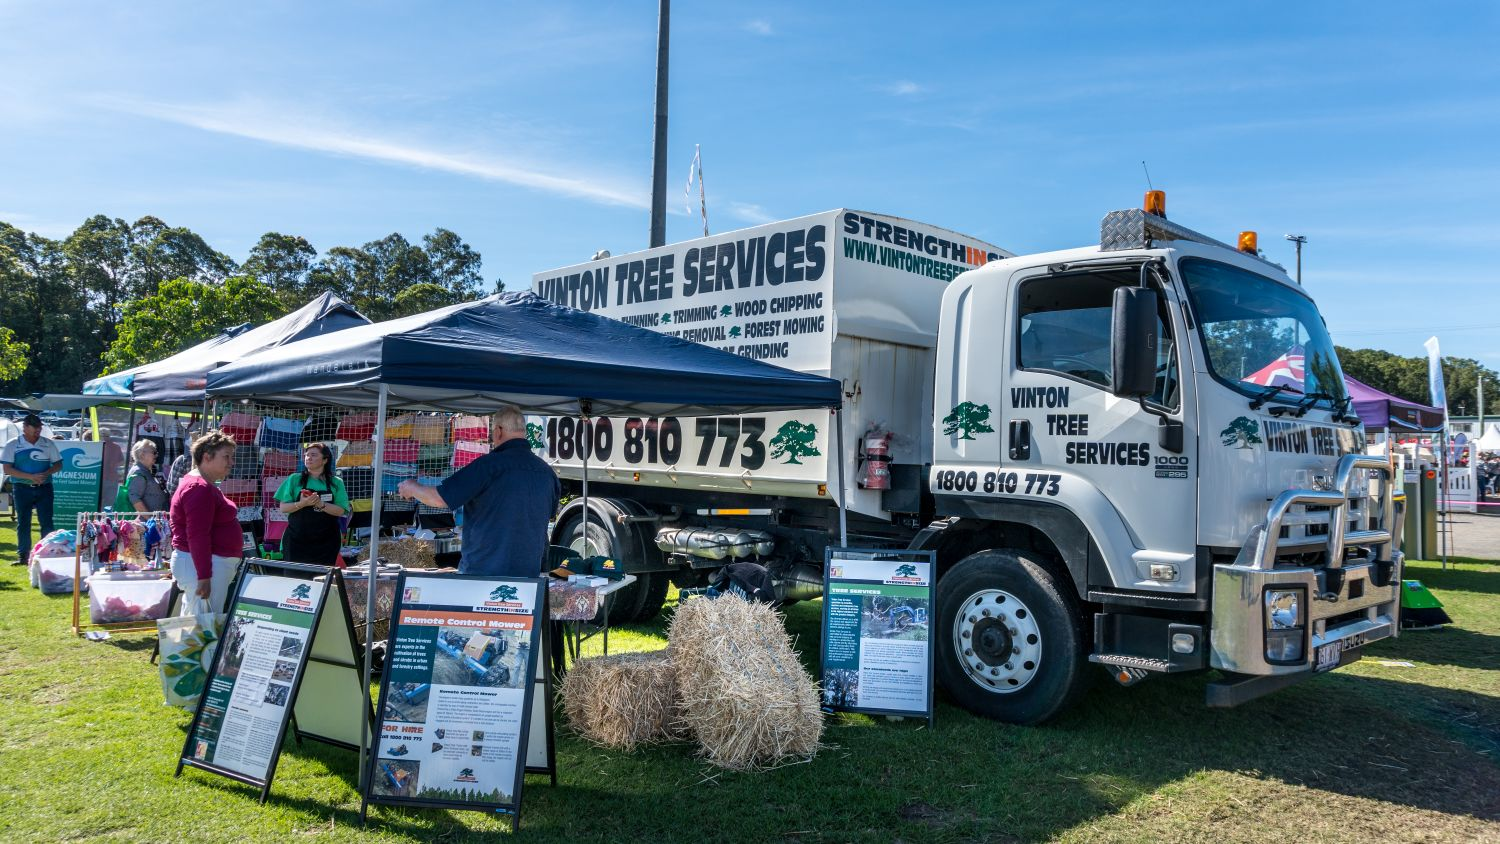 Vinton Tree Services display site at the 2019 Queensland Garden Expo